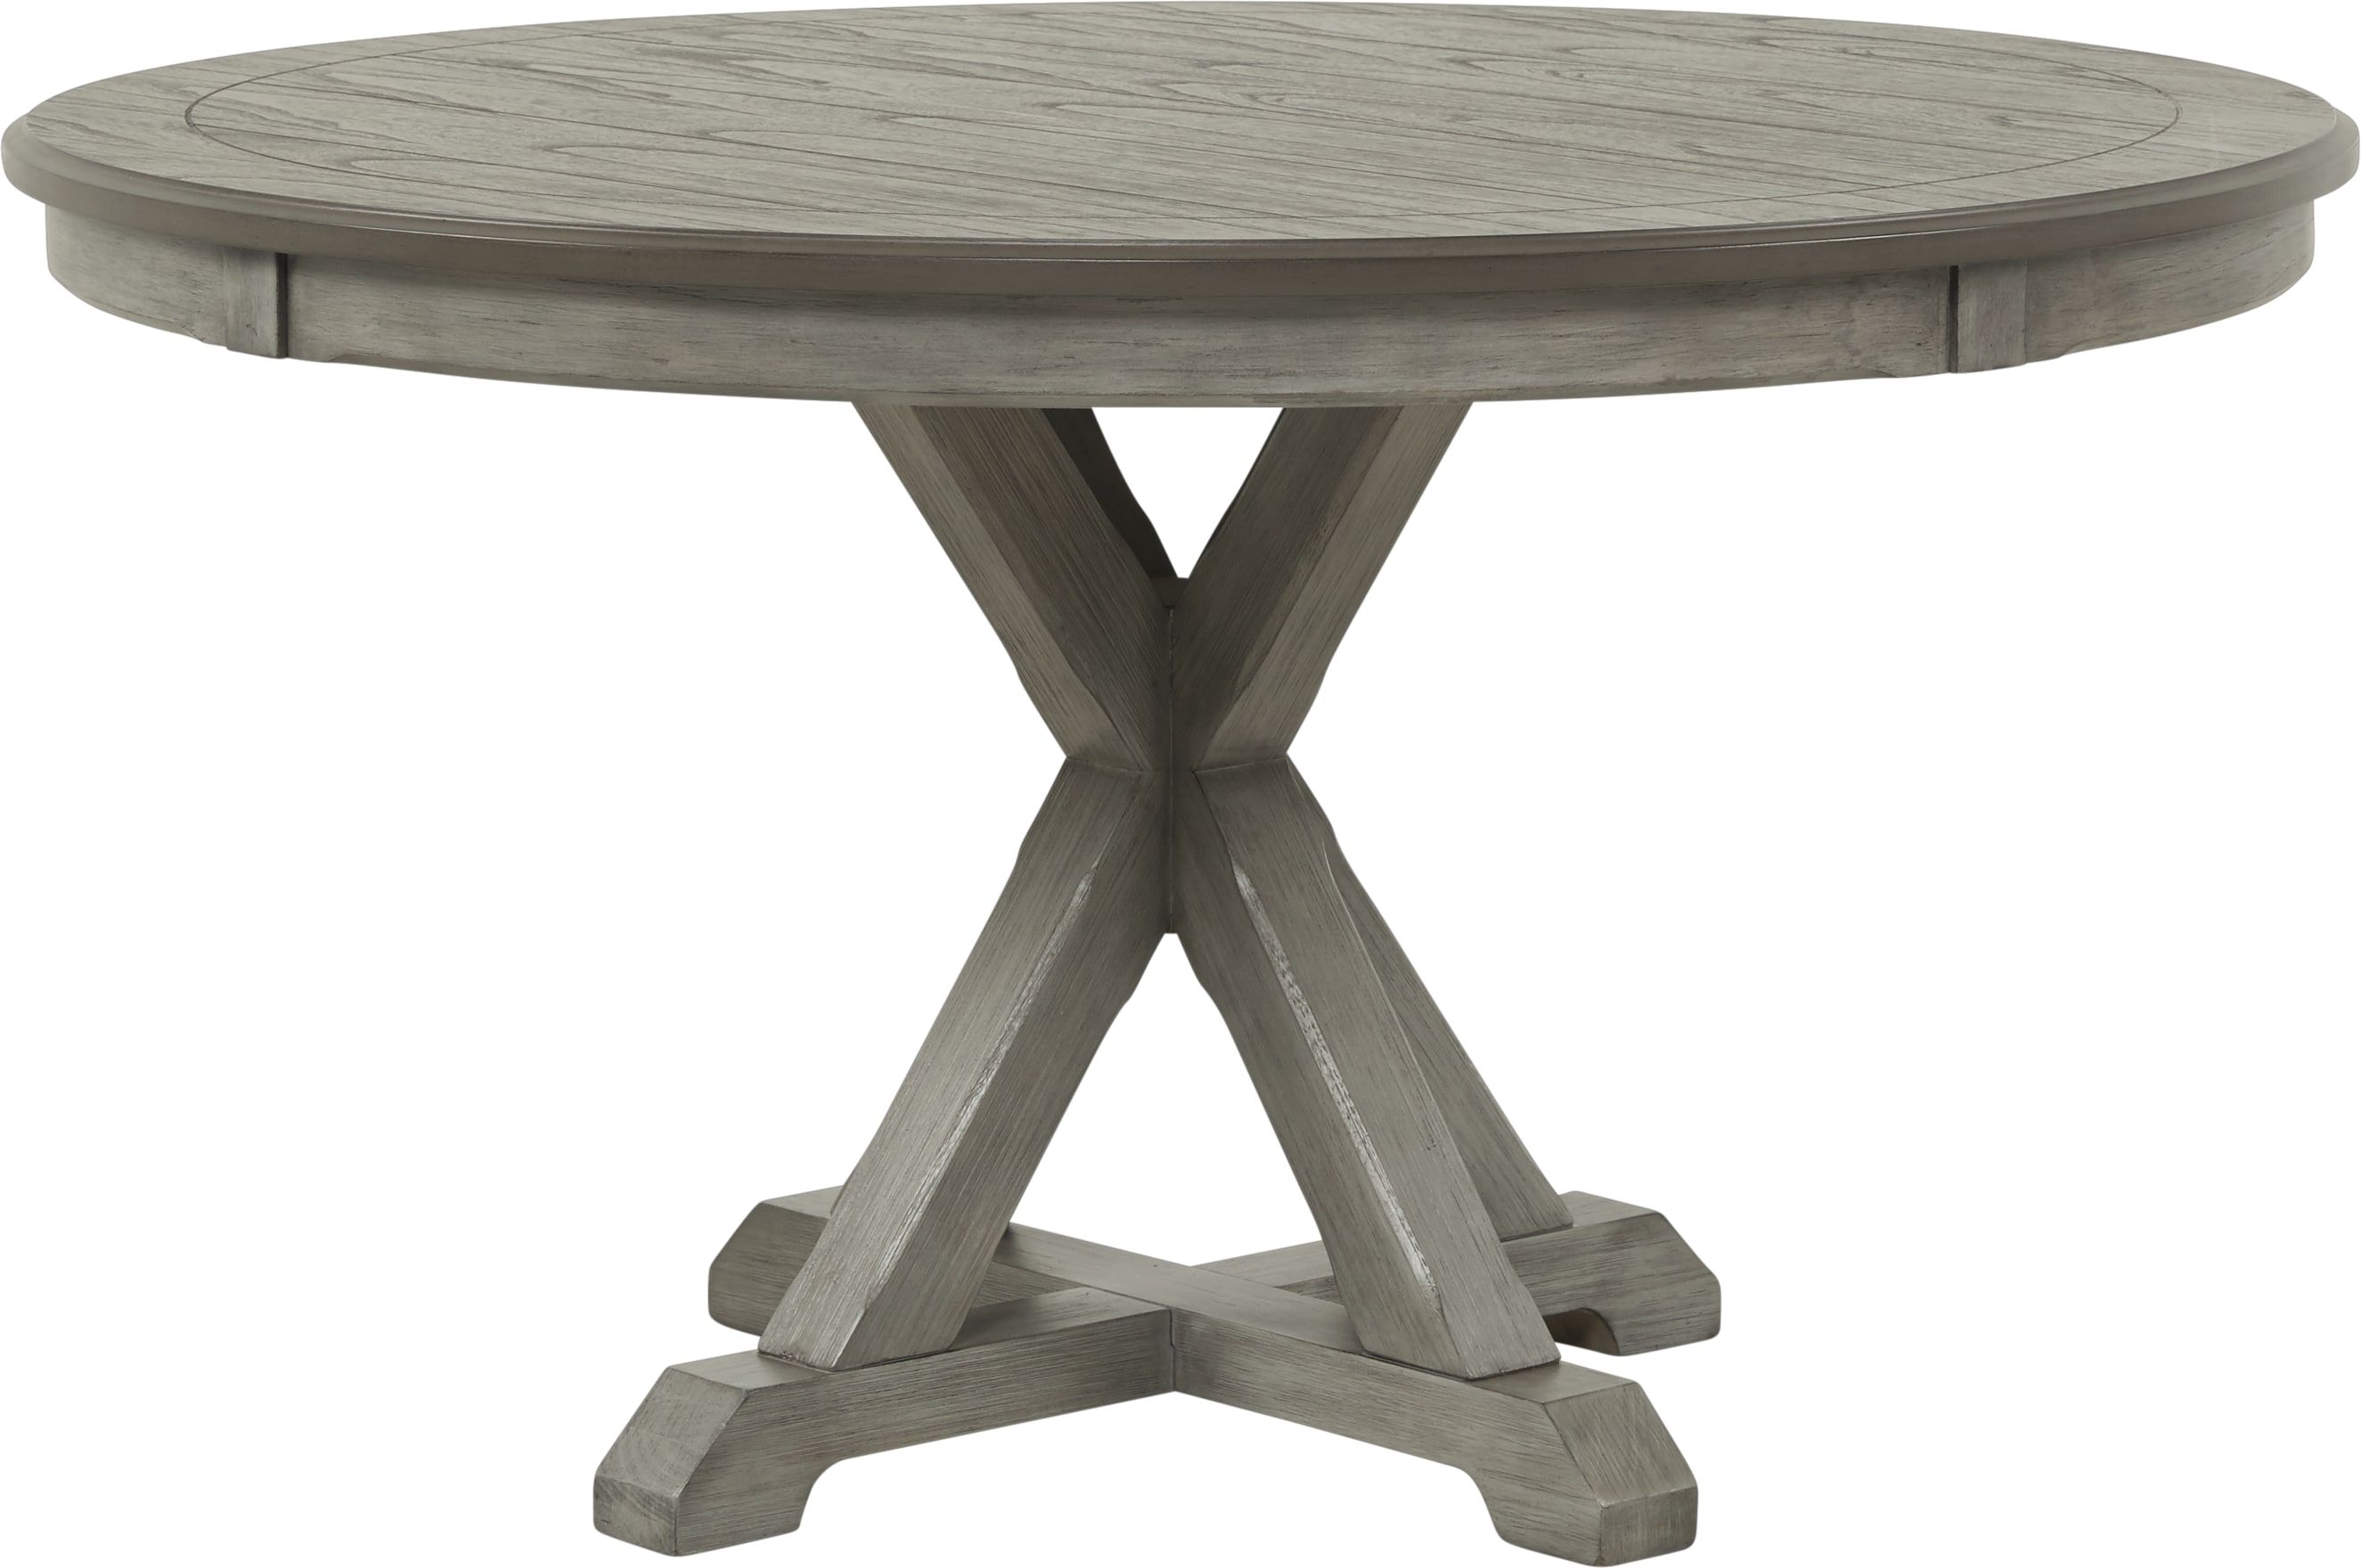 Nantucket Breeze Gray Round Dining Table Grey Round Dining Table